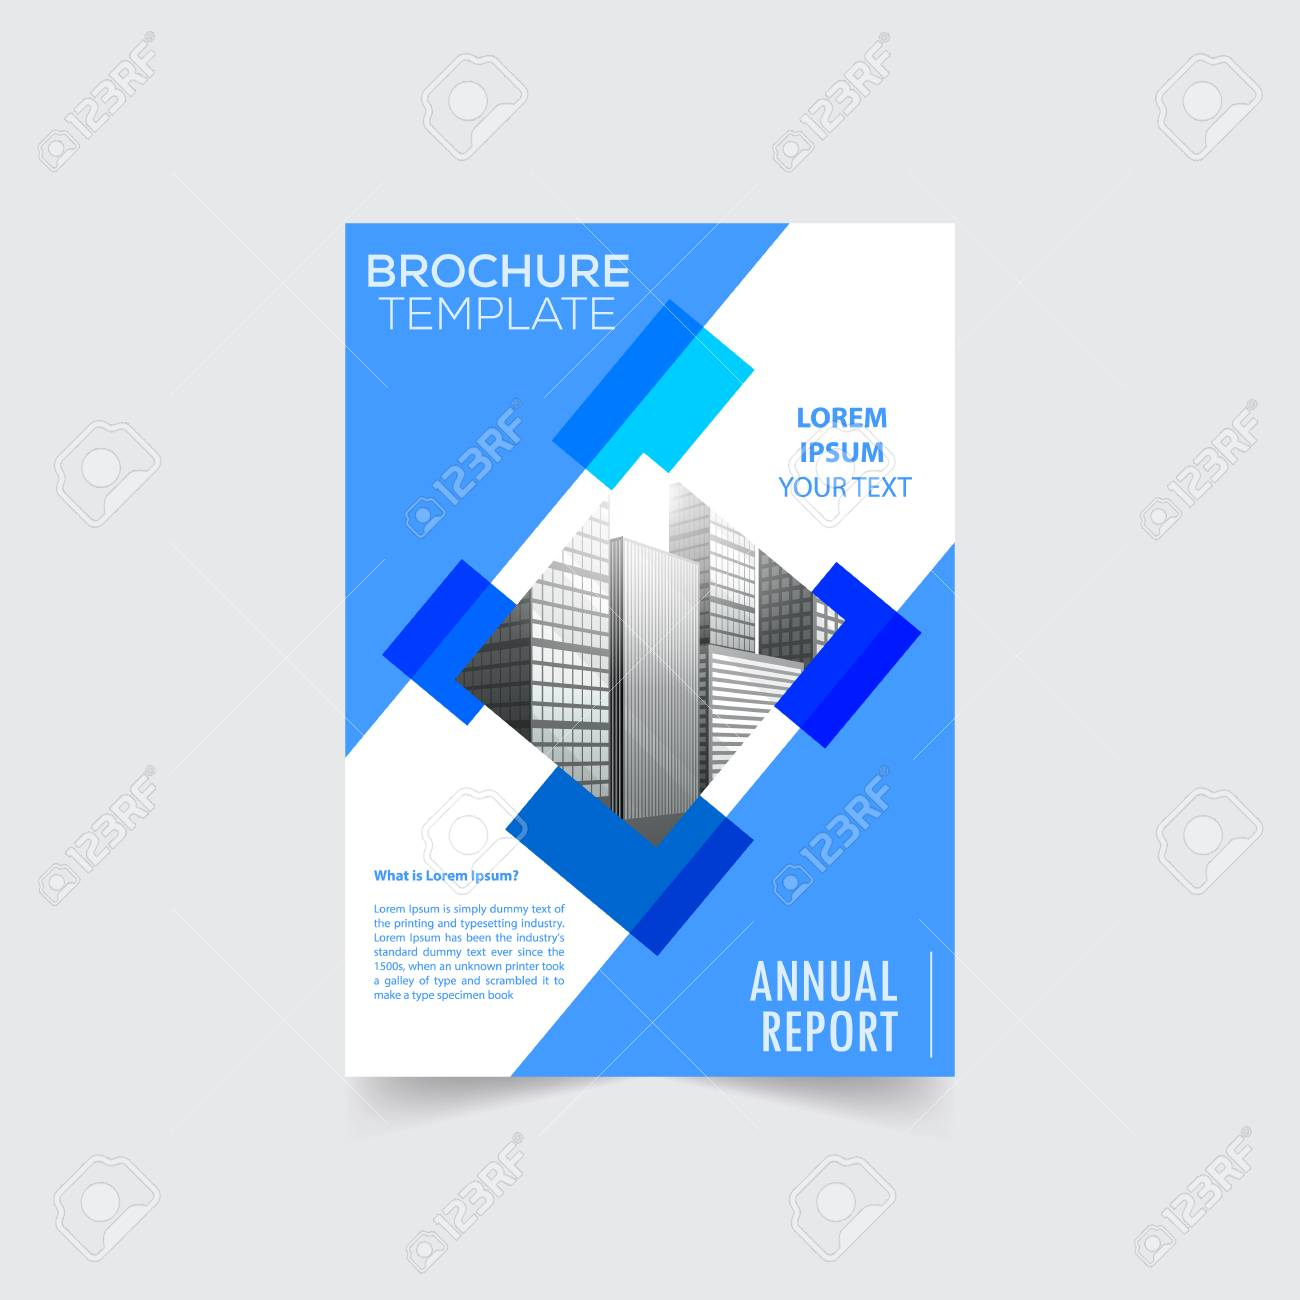 Background Brochure Design Template Vector Leaflet Cover Presentation Royalty Free Cliparts Vectors And Stock Illustration Image 93215711